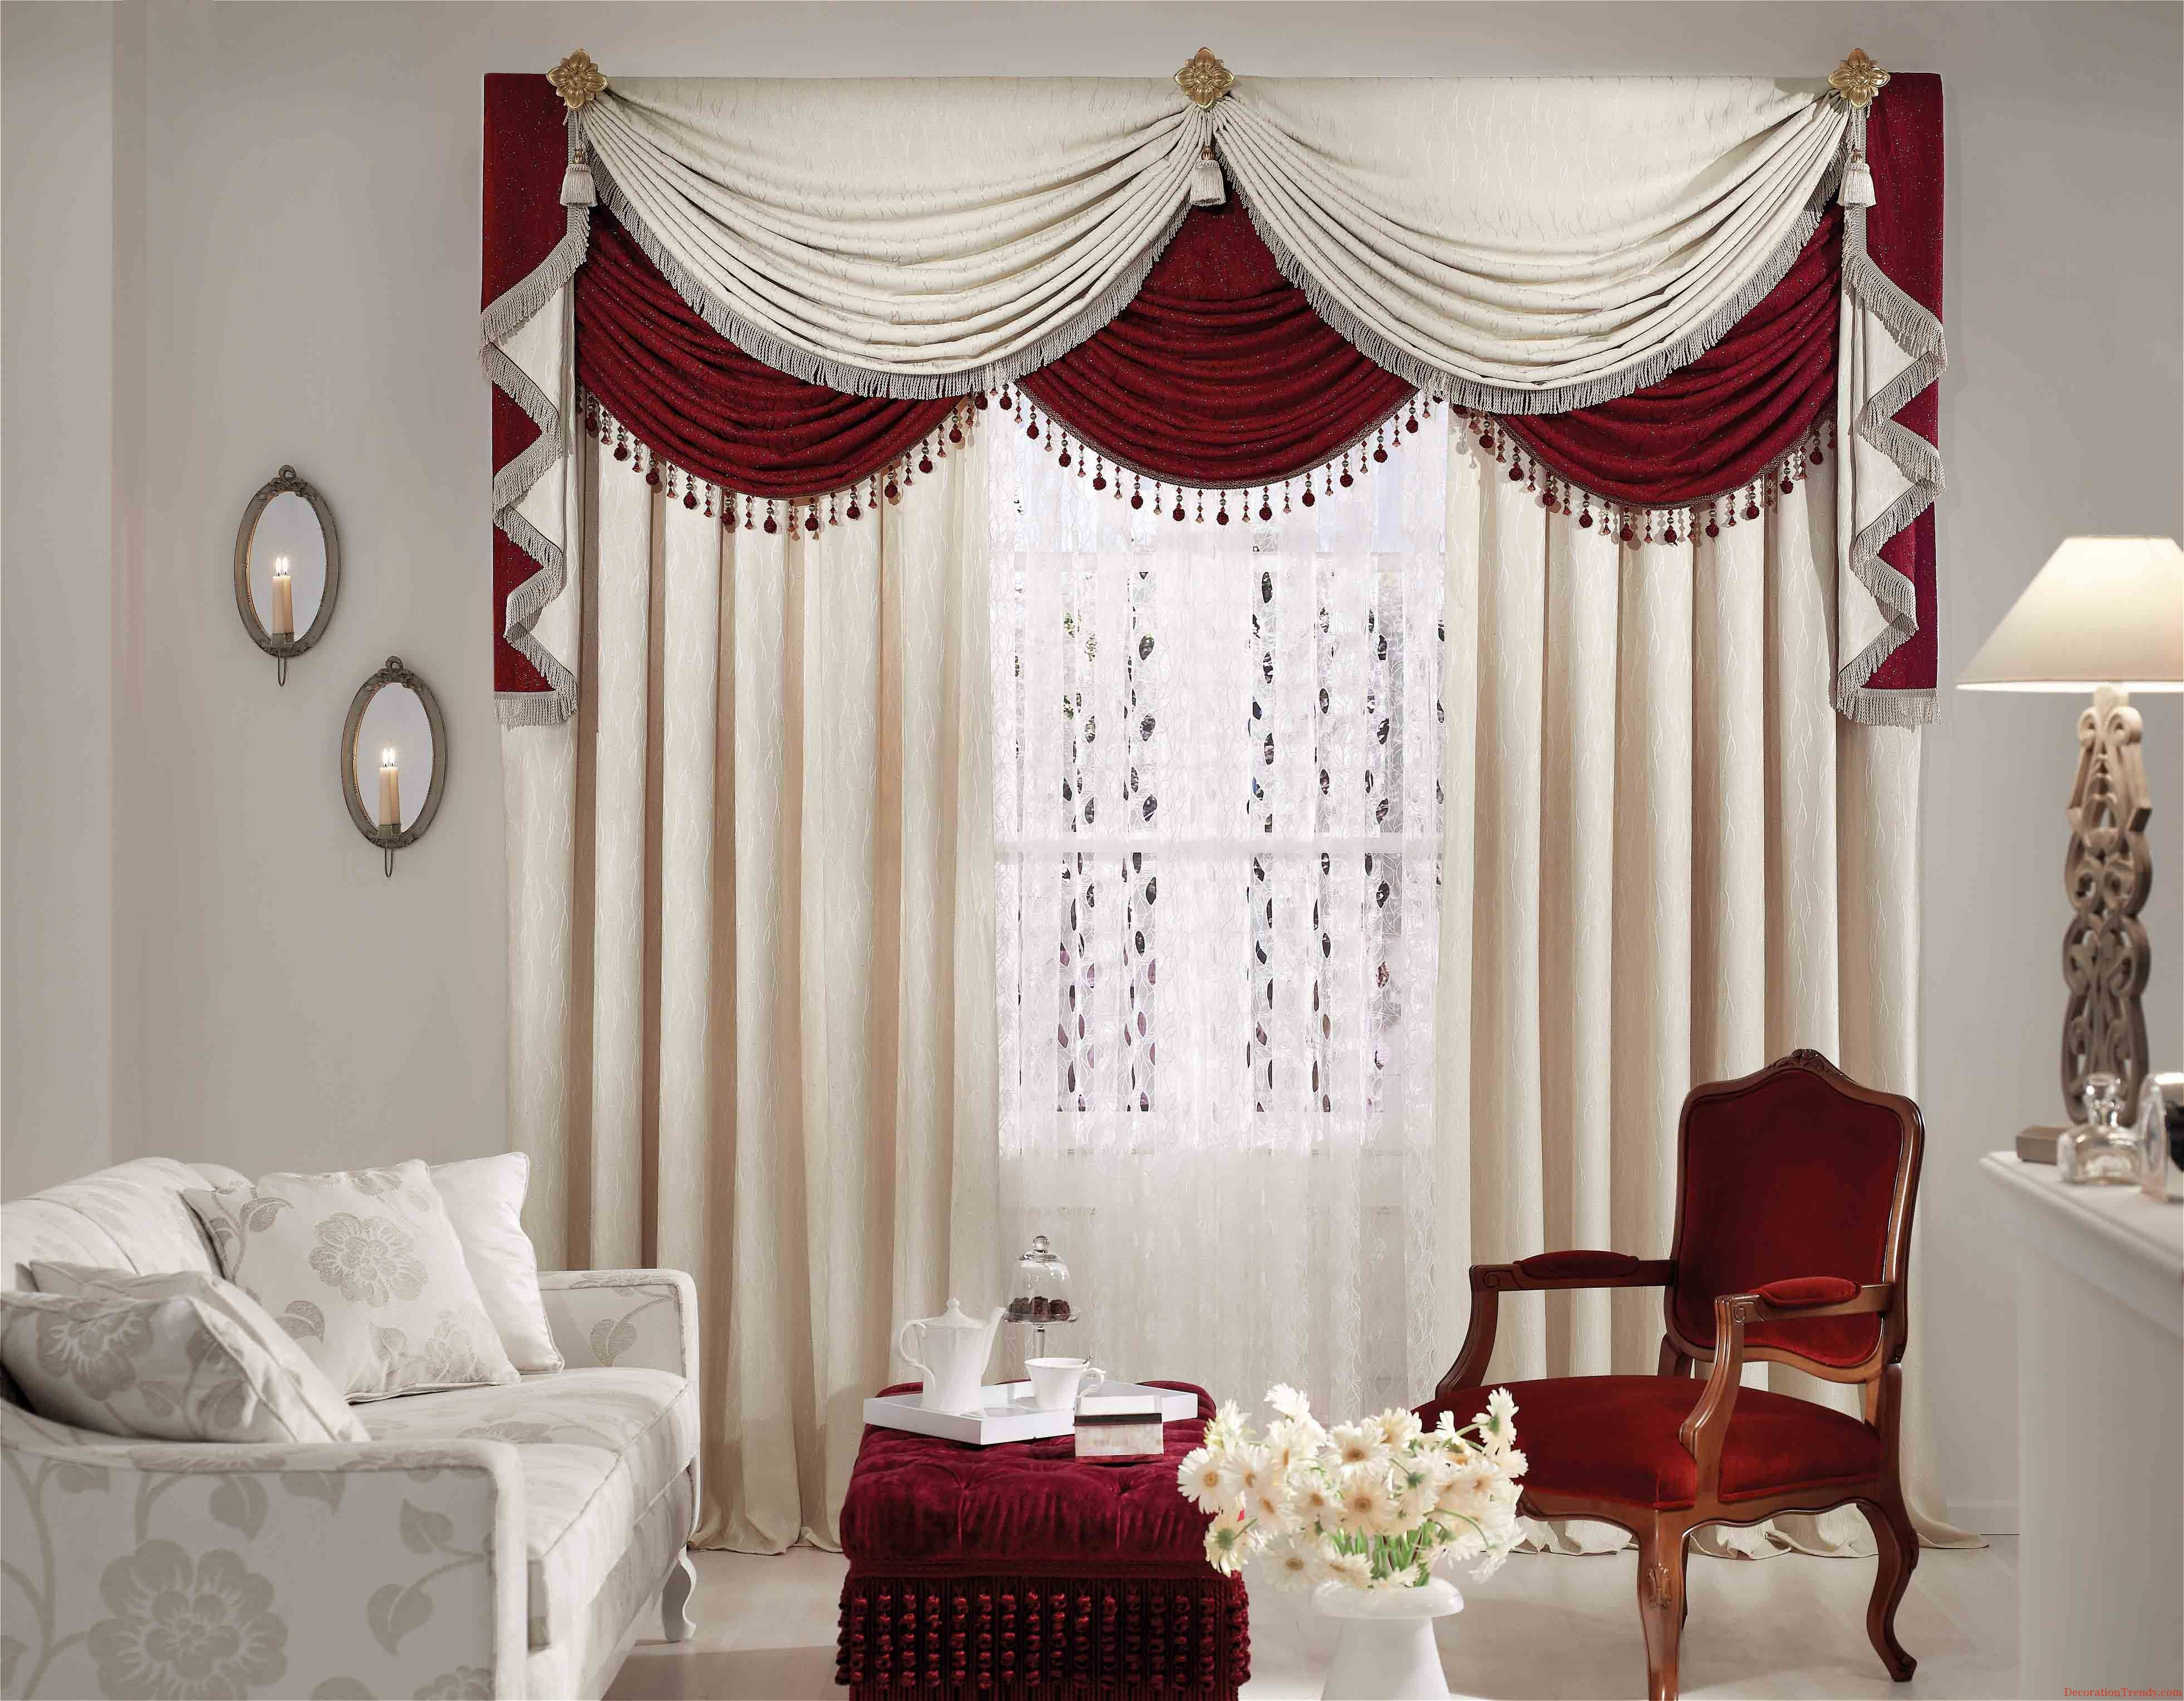 Living Room Curtain Design Unique 40 Amazing & Stunning Curtain Design Ideas 2017  Curtain Designs 2018